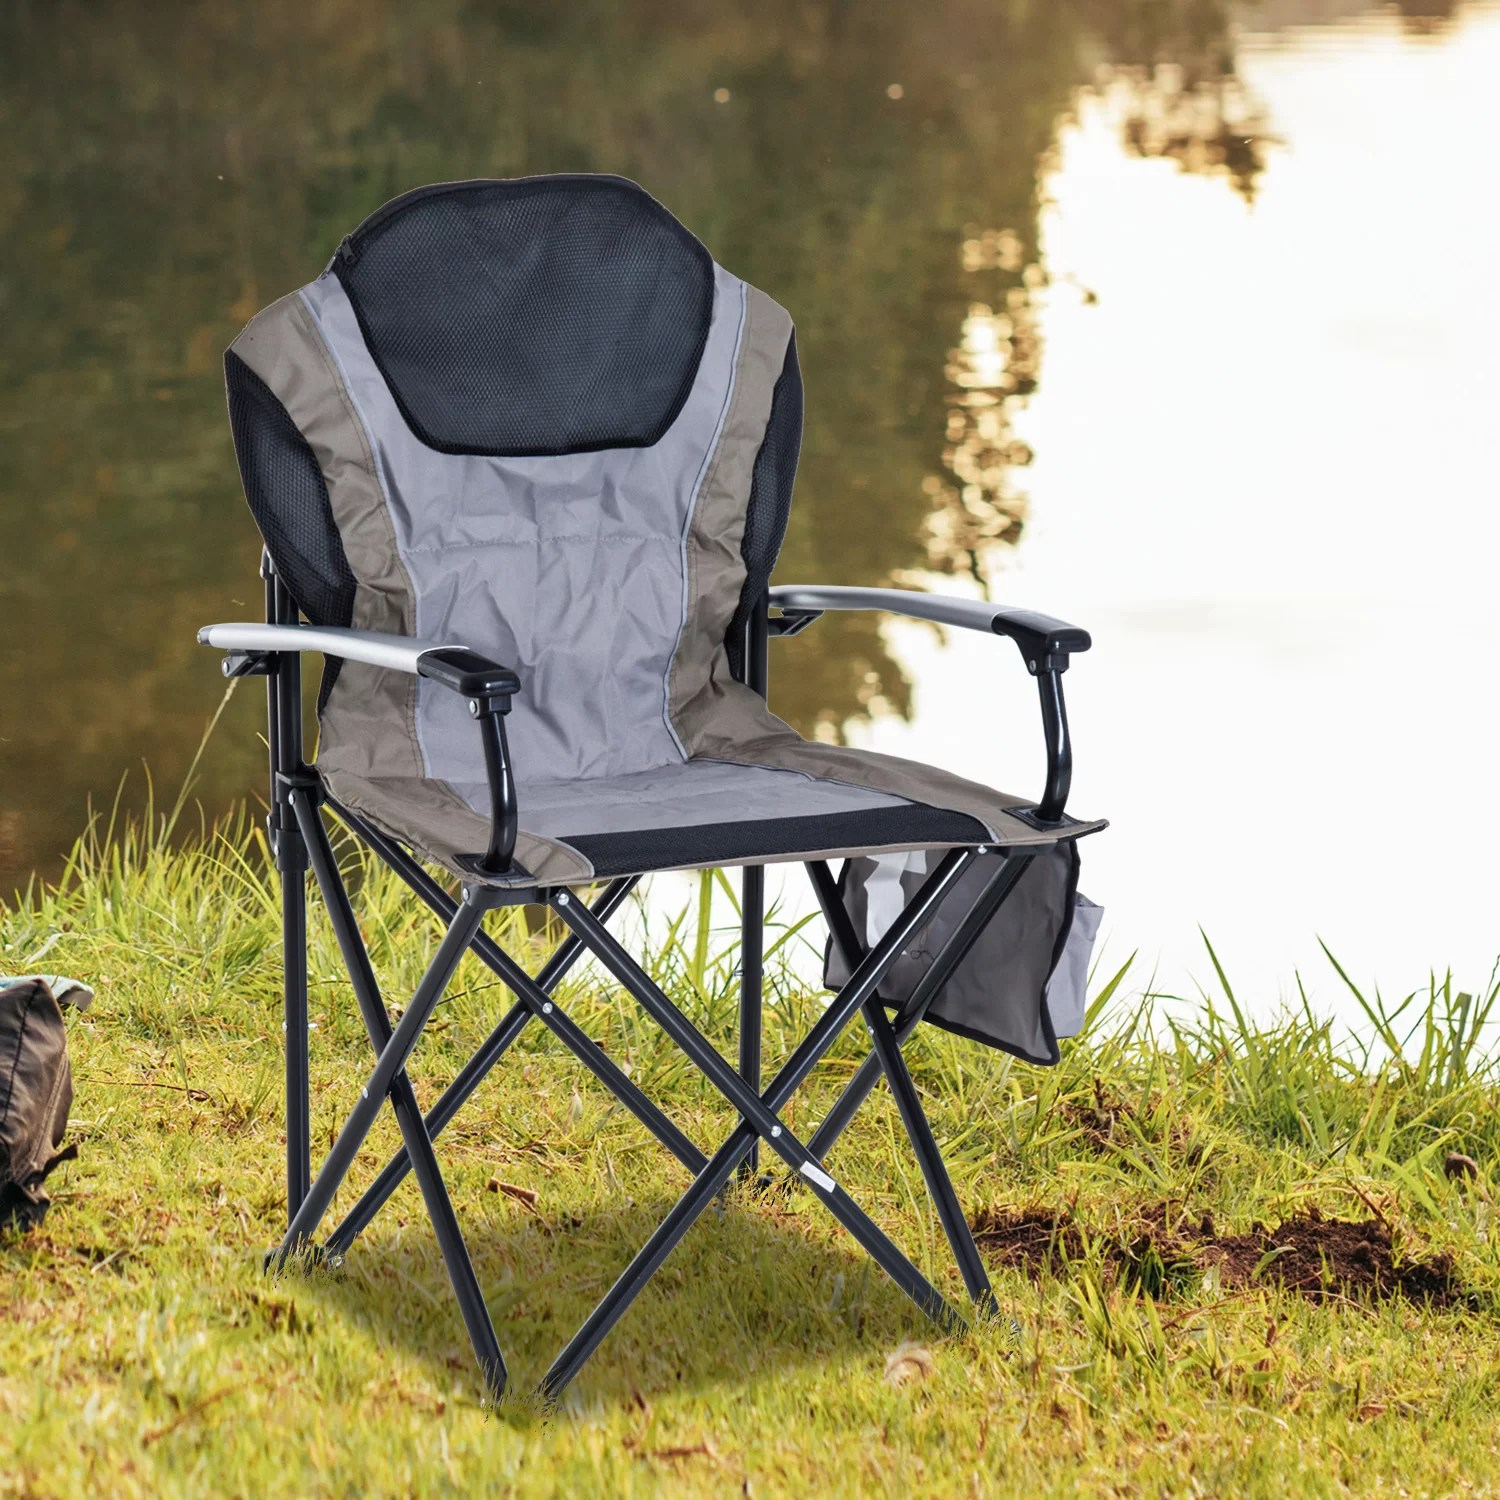 padded camping chair pottery barn anywhere knock off freeport park schafer aluminum outdoor folding wayfair